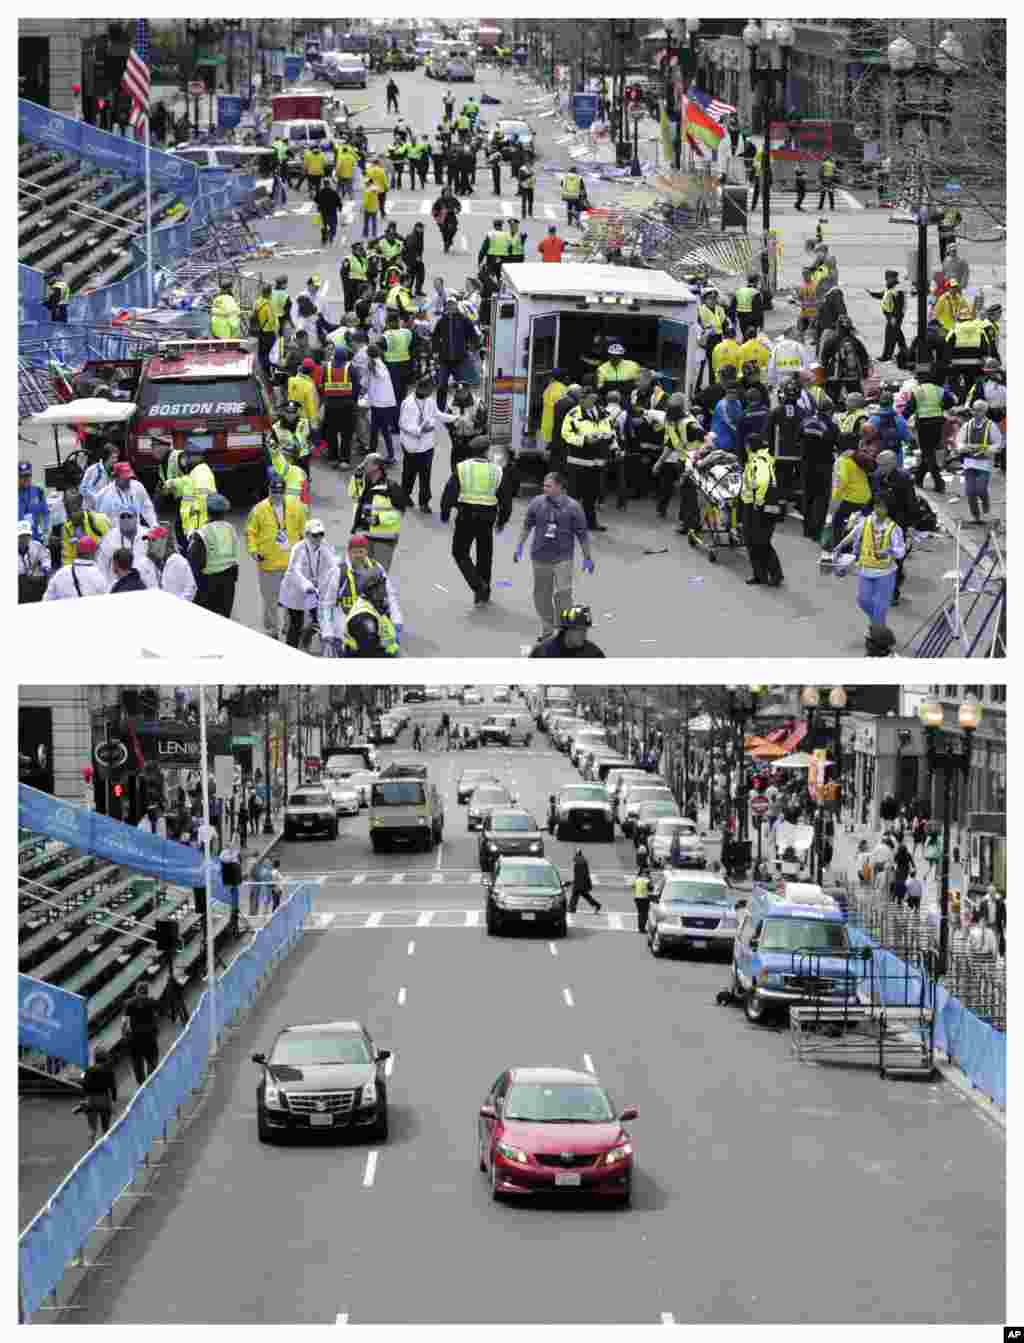 These photos were taken April 15, 2013 and April 14, 2014. The 2013 photo shows medical workers aiding injured people on Boylston Street near the finish line of the 2013 Boston Marathon following two bomb explosions, and nearly a year later traffic flowing on the same street.